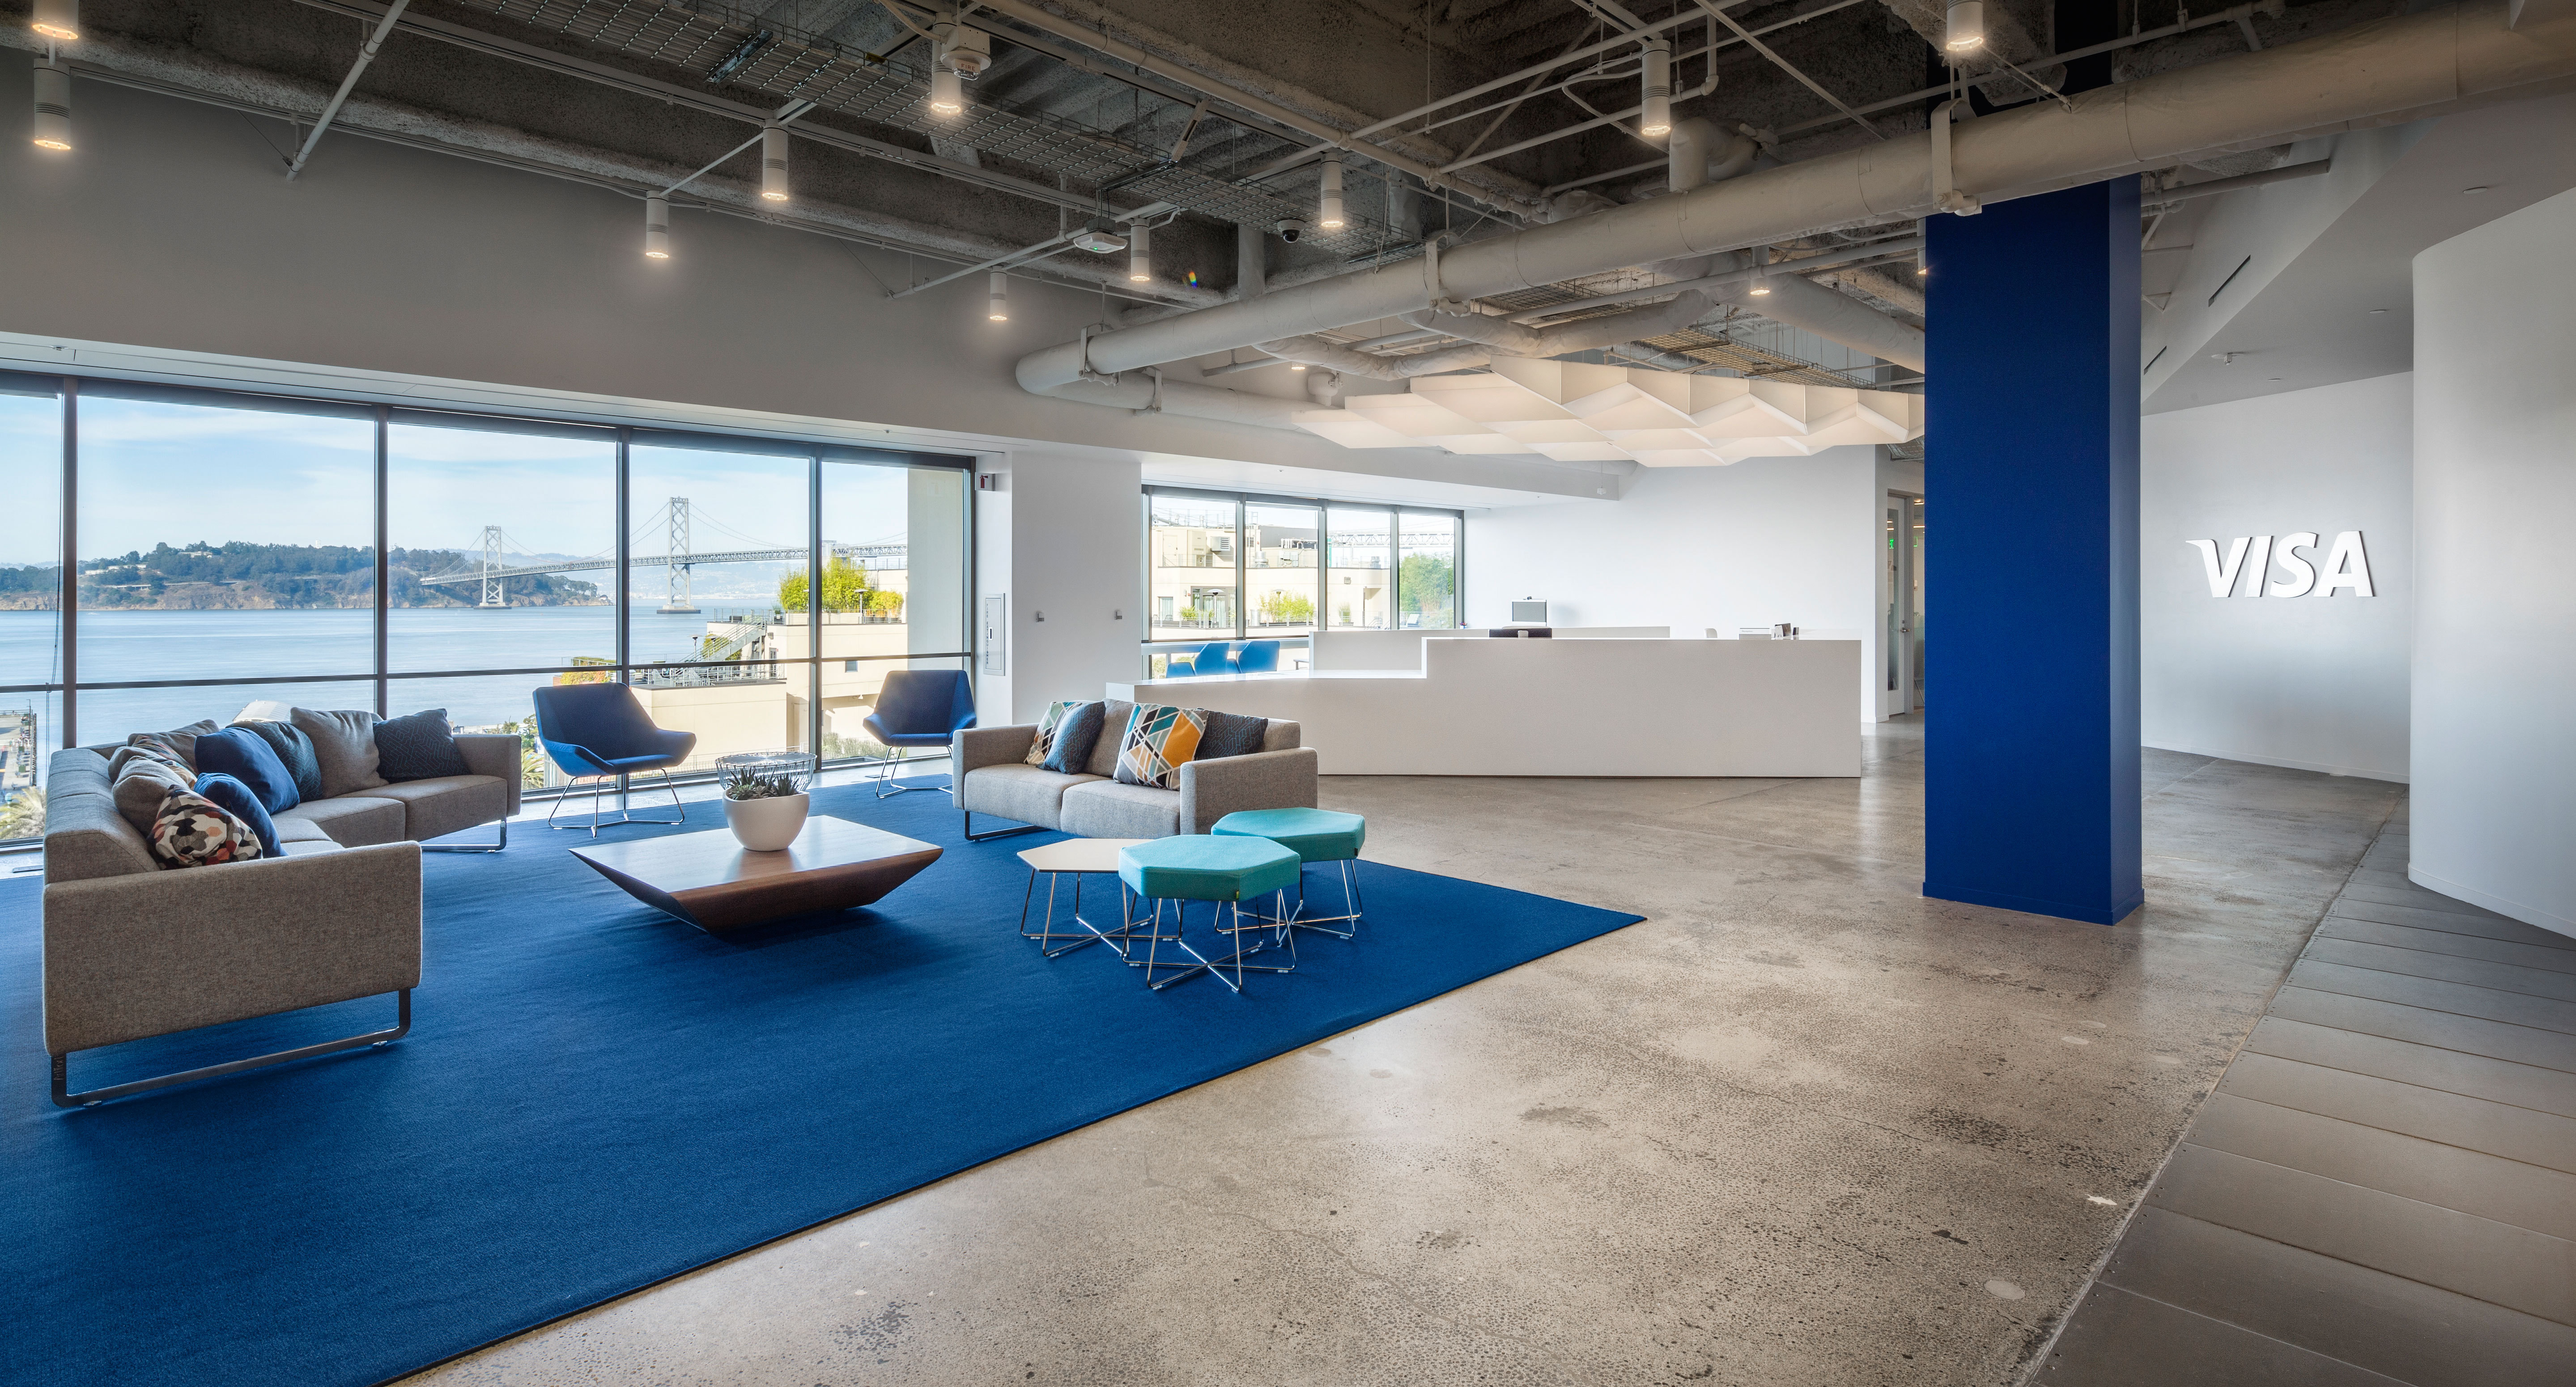 Visa opens san francisco technology center to advance for It company office design